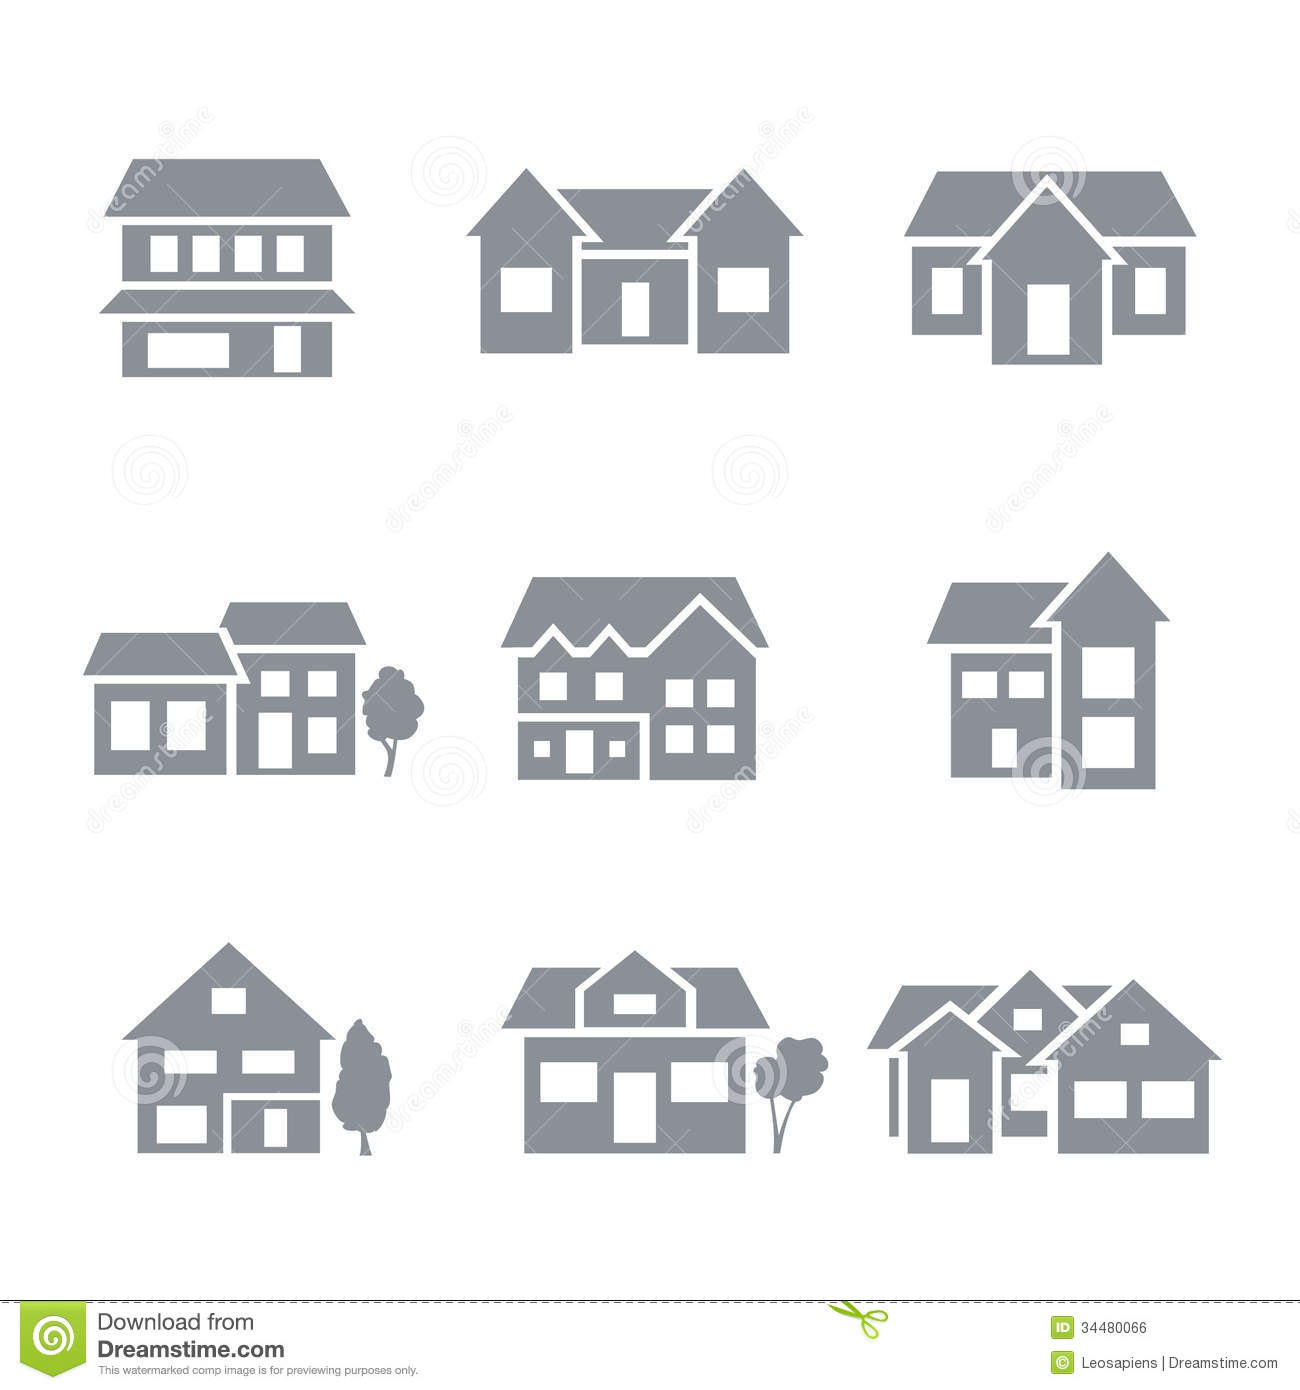 20 Building Icon Free Vector Simple Images